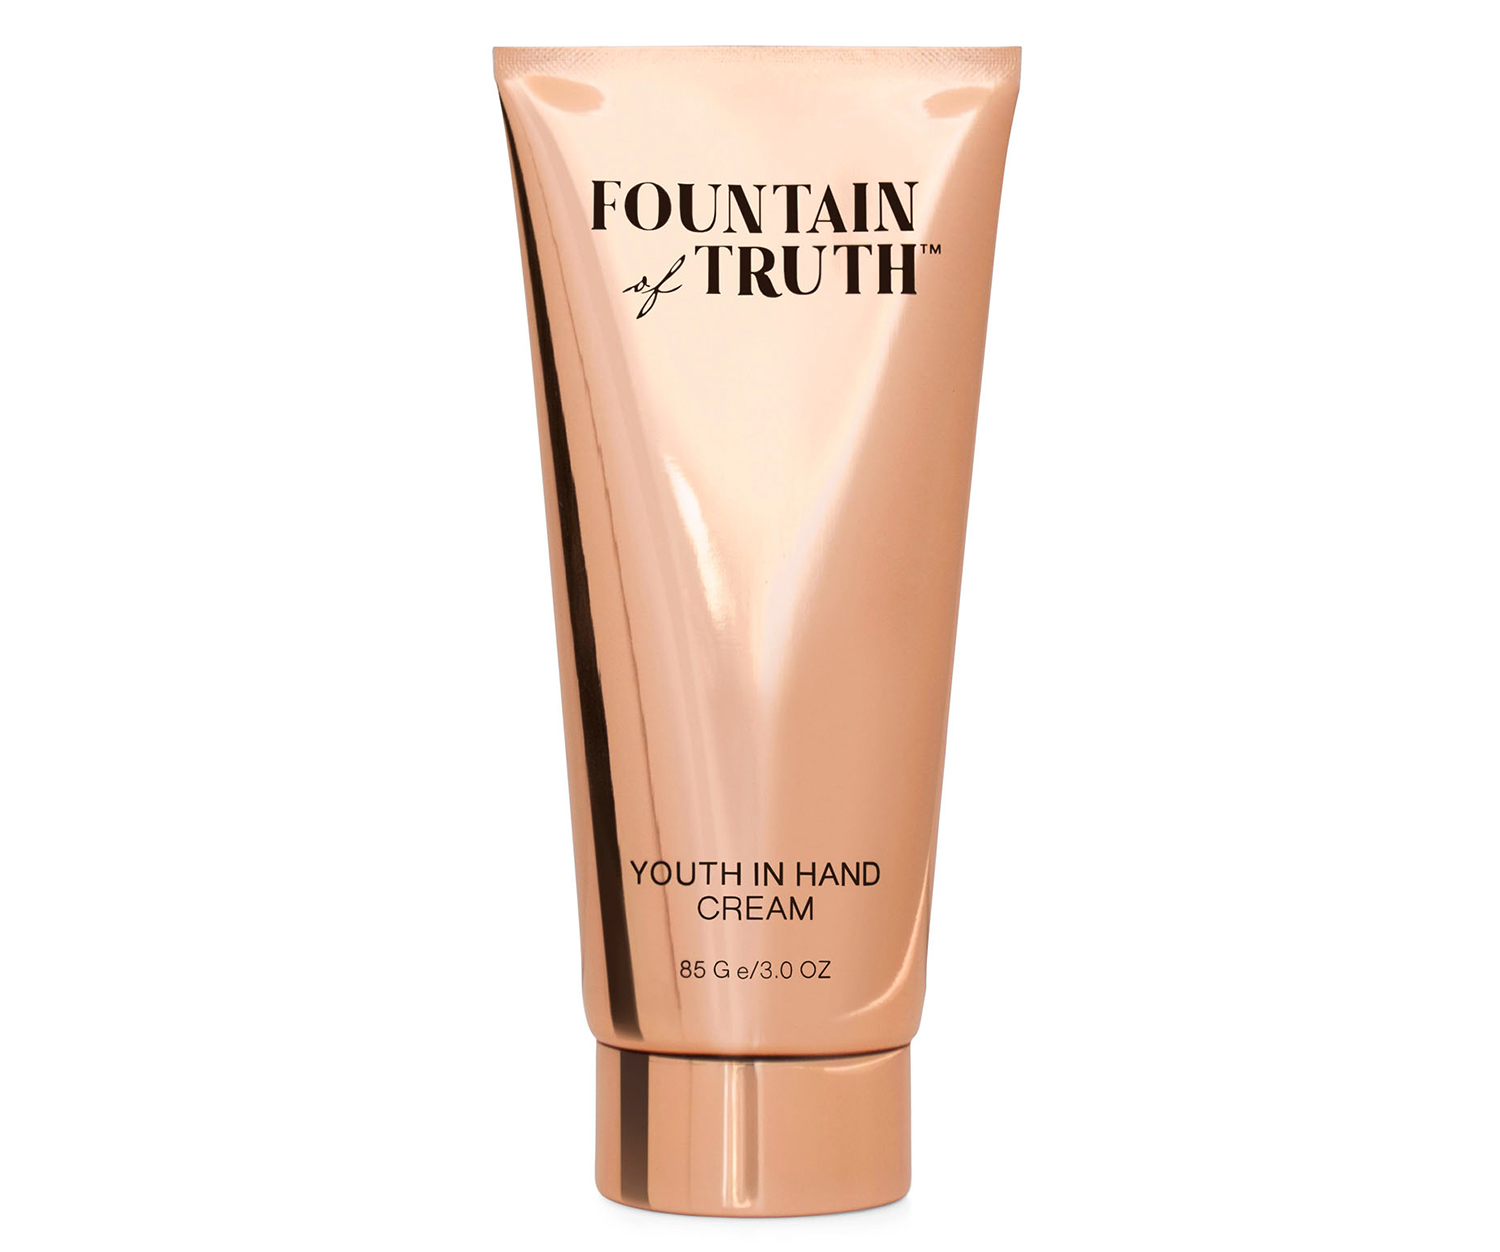 youth in hand cream from fountain of truth